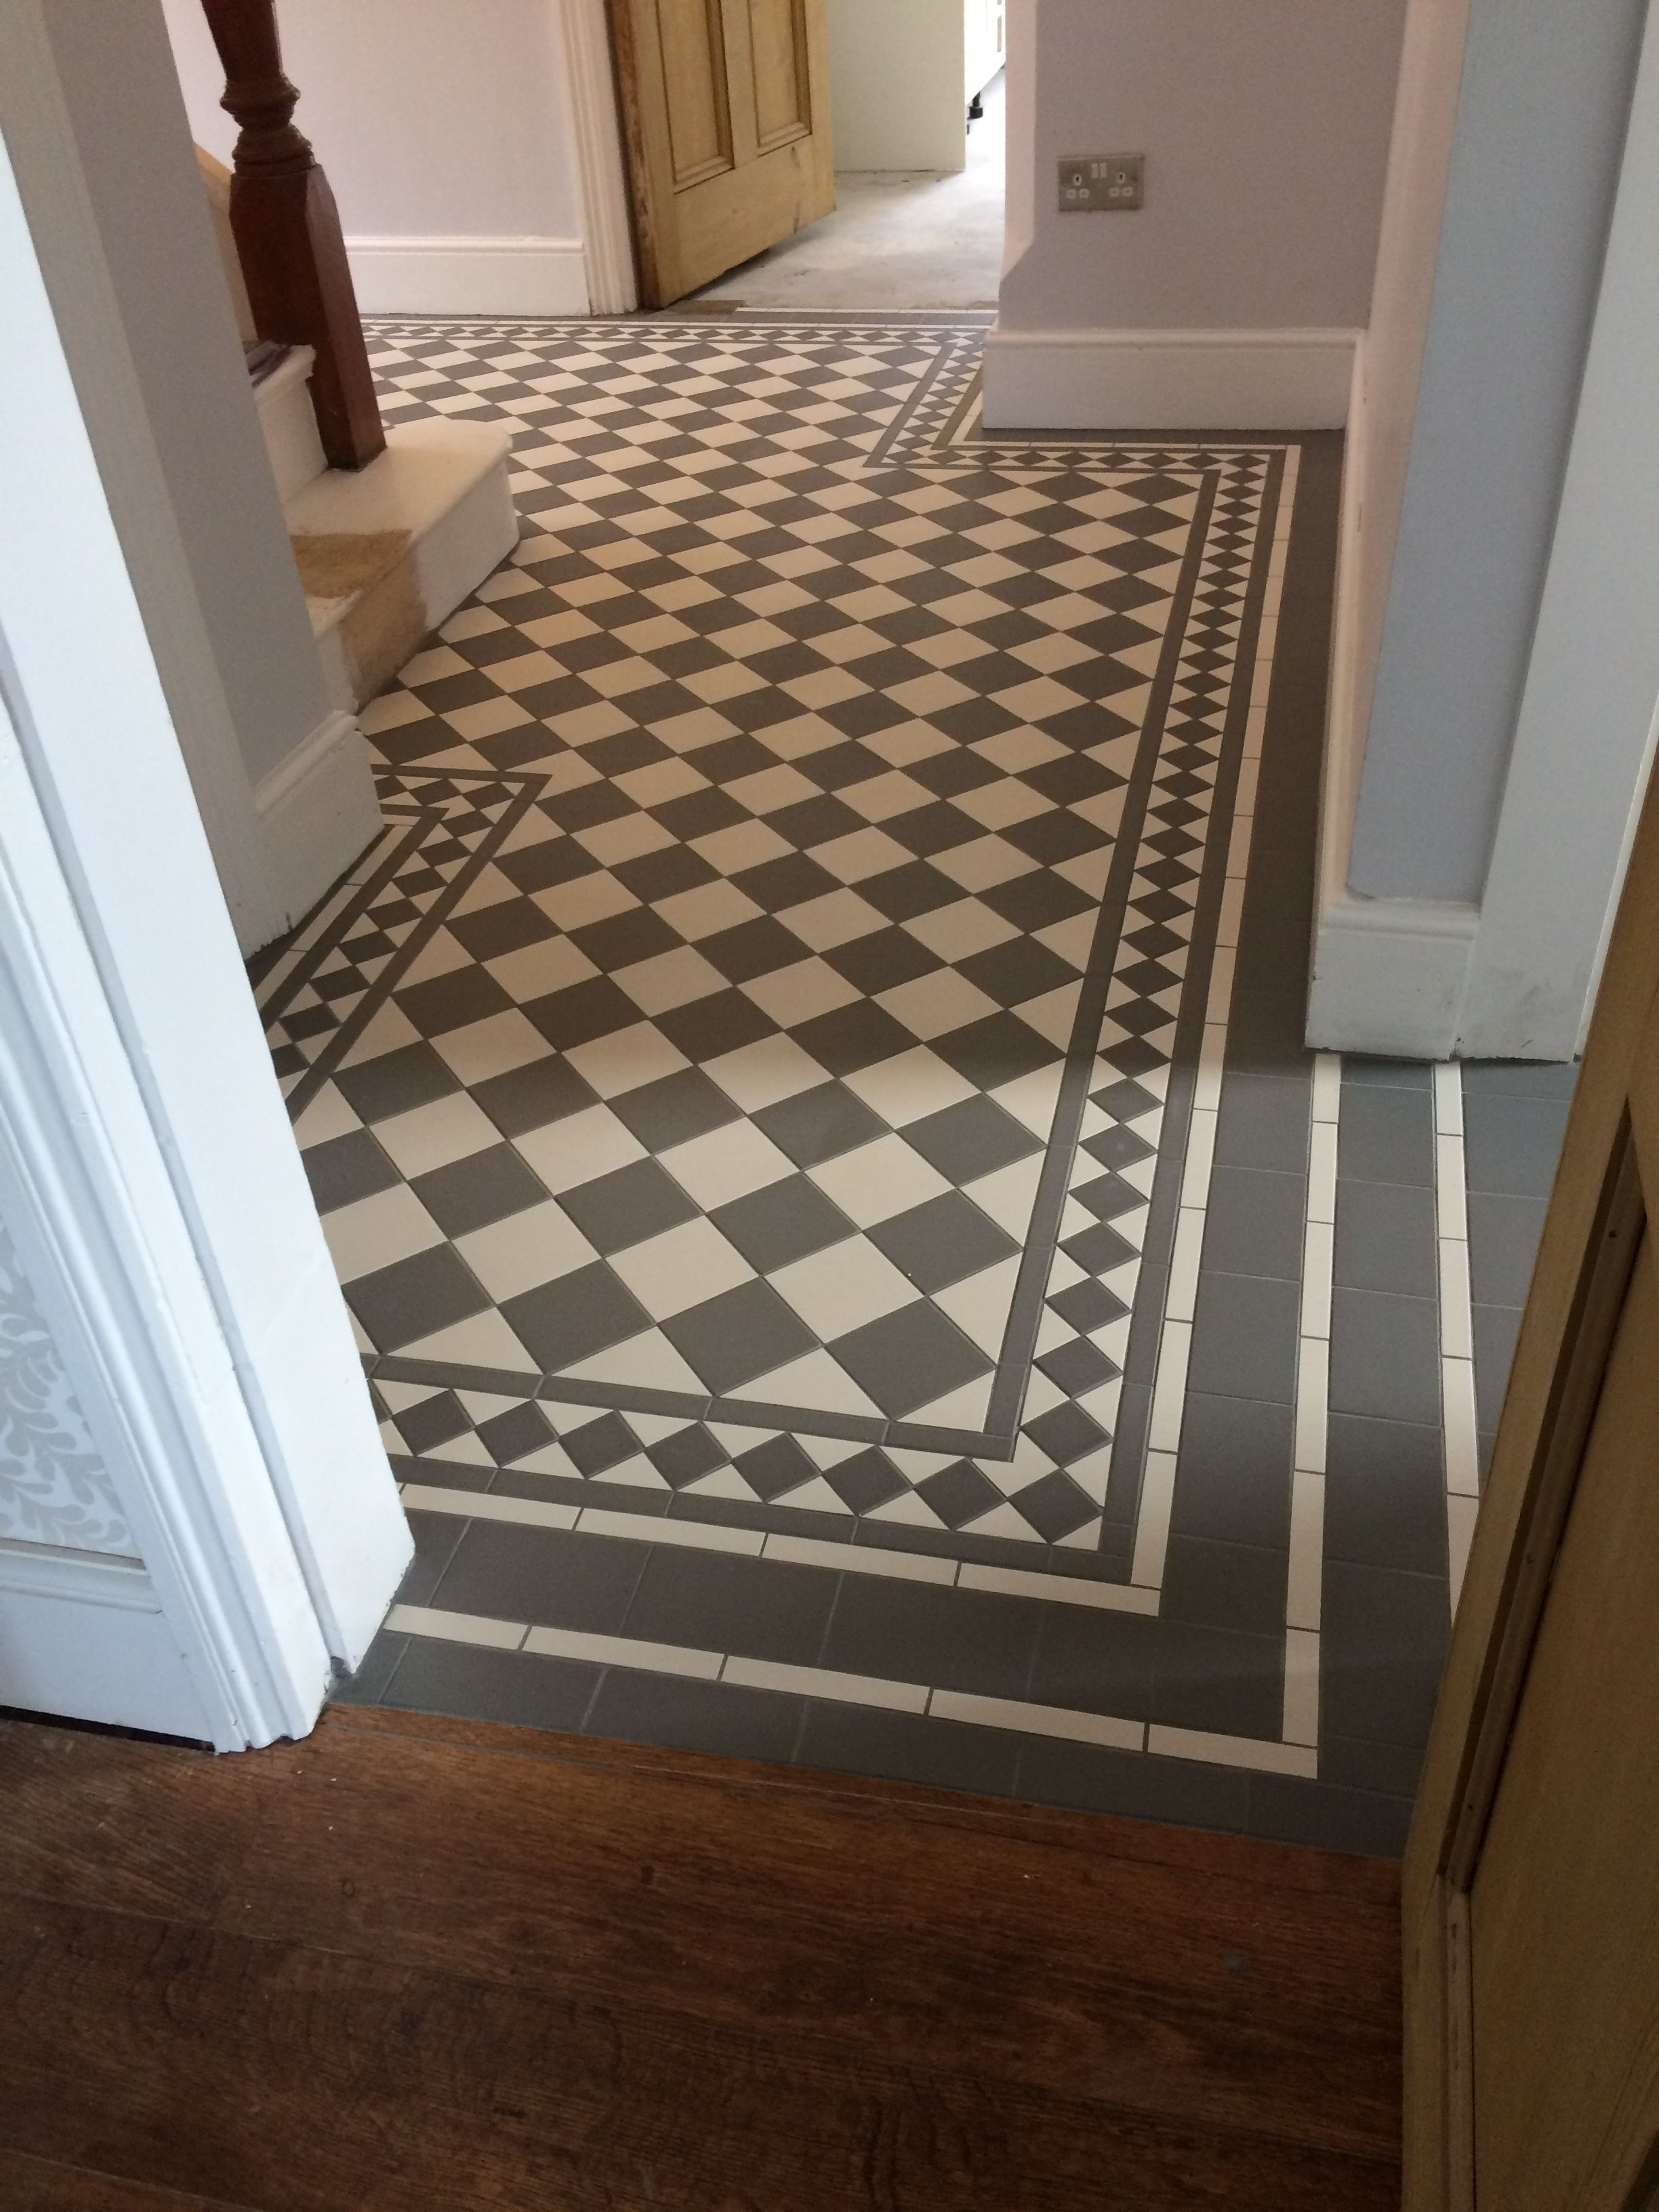 Victorian floor tiles gallery, Original Style floors, period floors ...